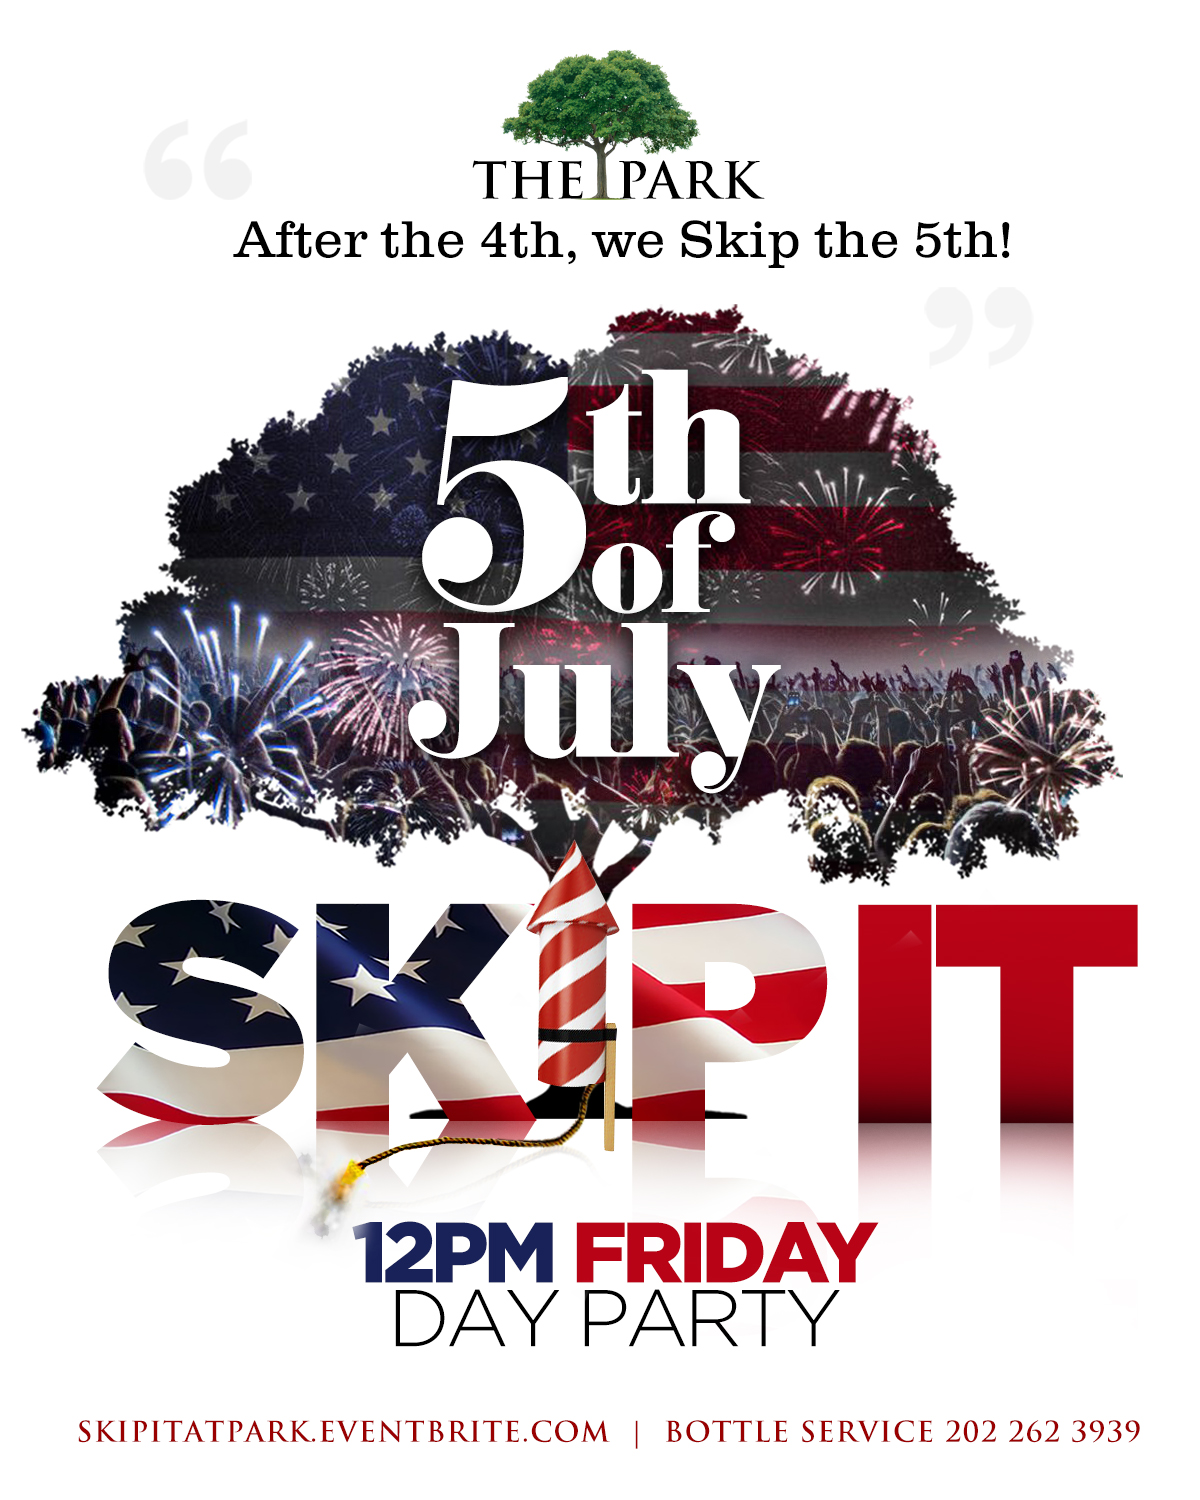 Skip it 5th of July Flyer.jpg